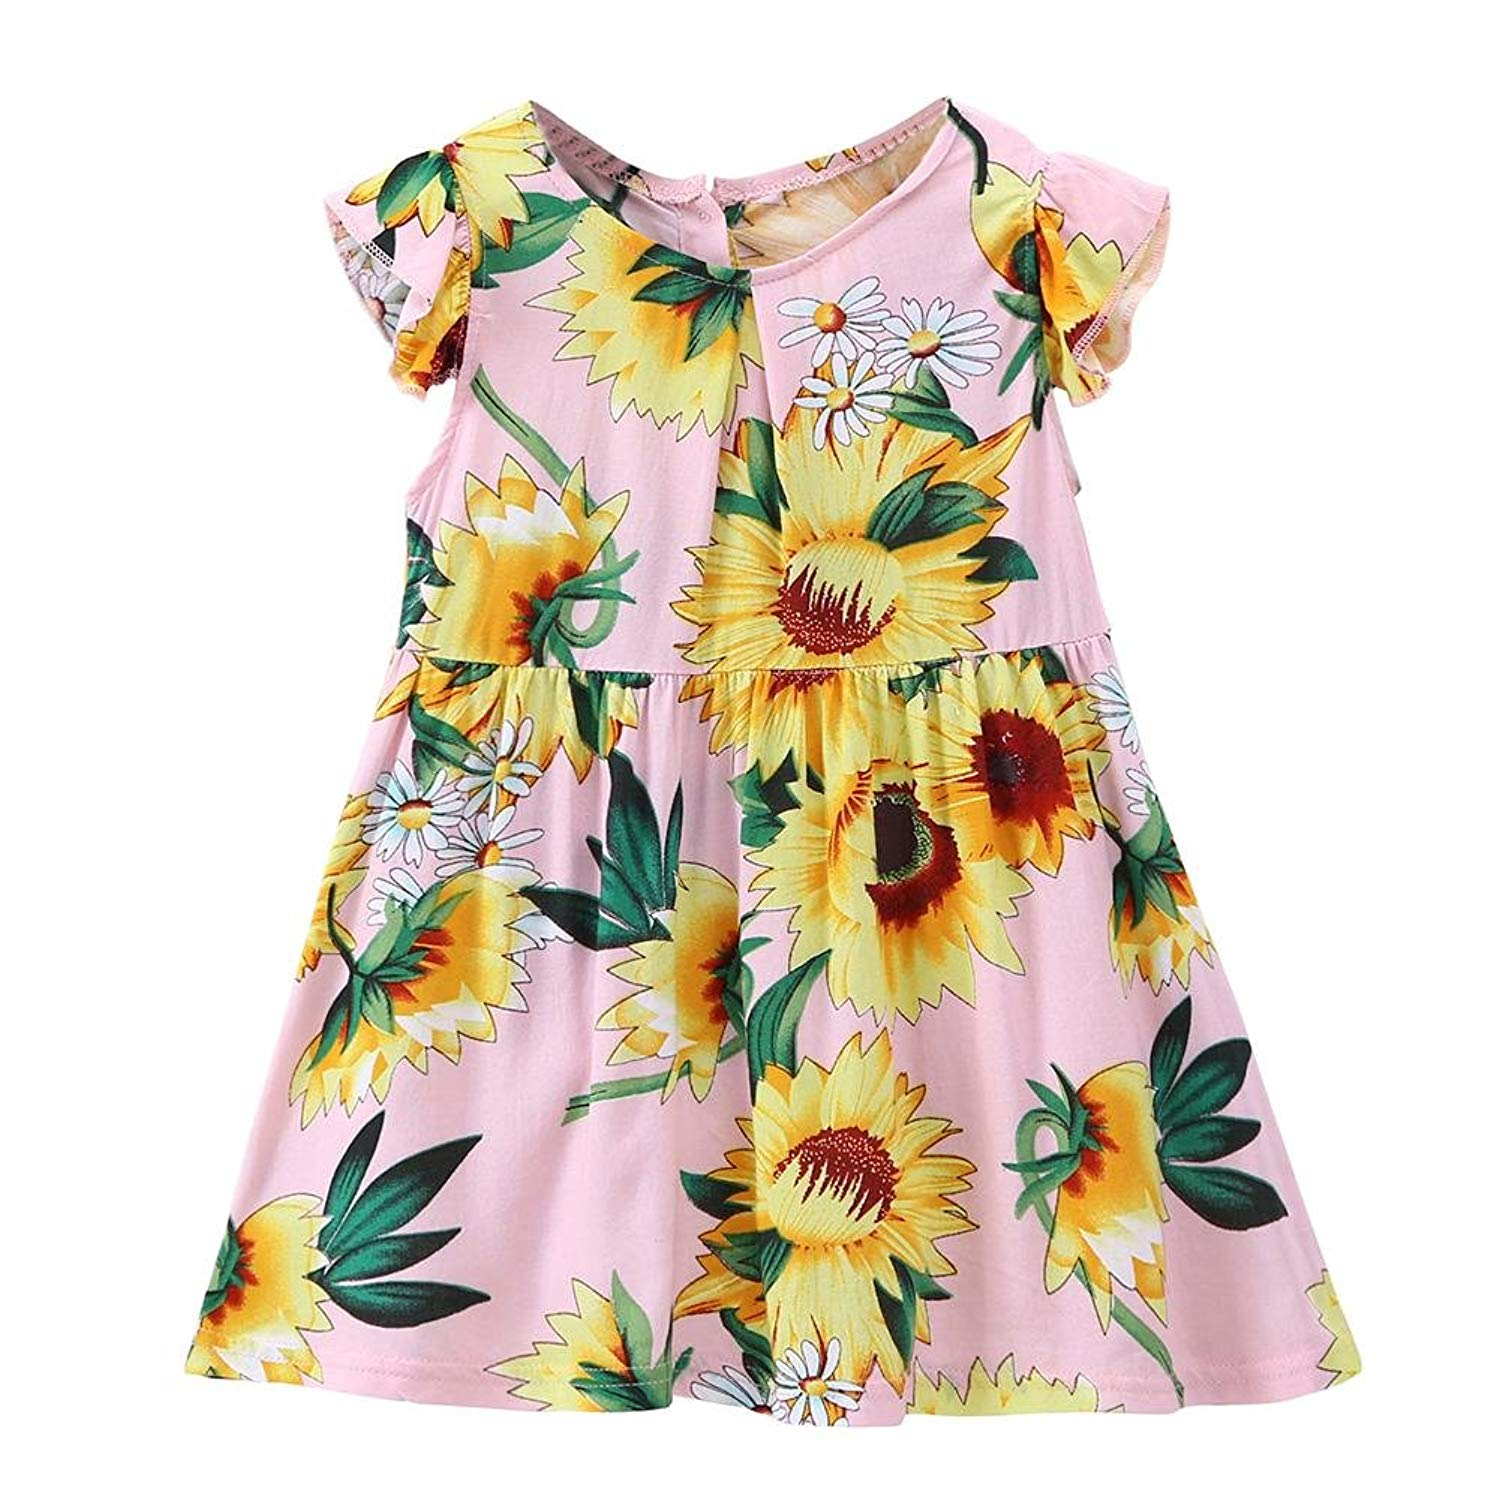 chinatera Baby Girls Princess Dress Toddlers Sunflower Print Long Sleeve Dresses Outfits Clothes Fall